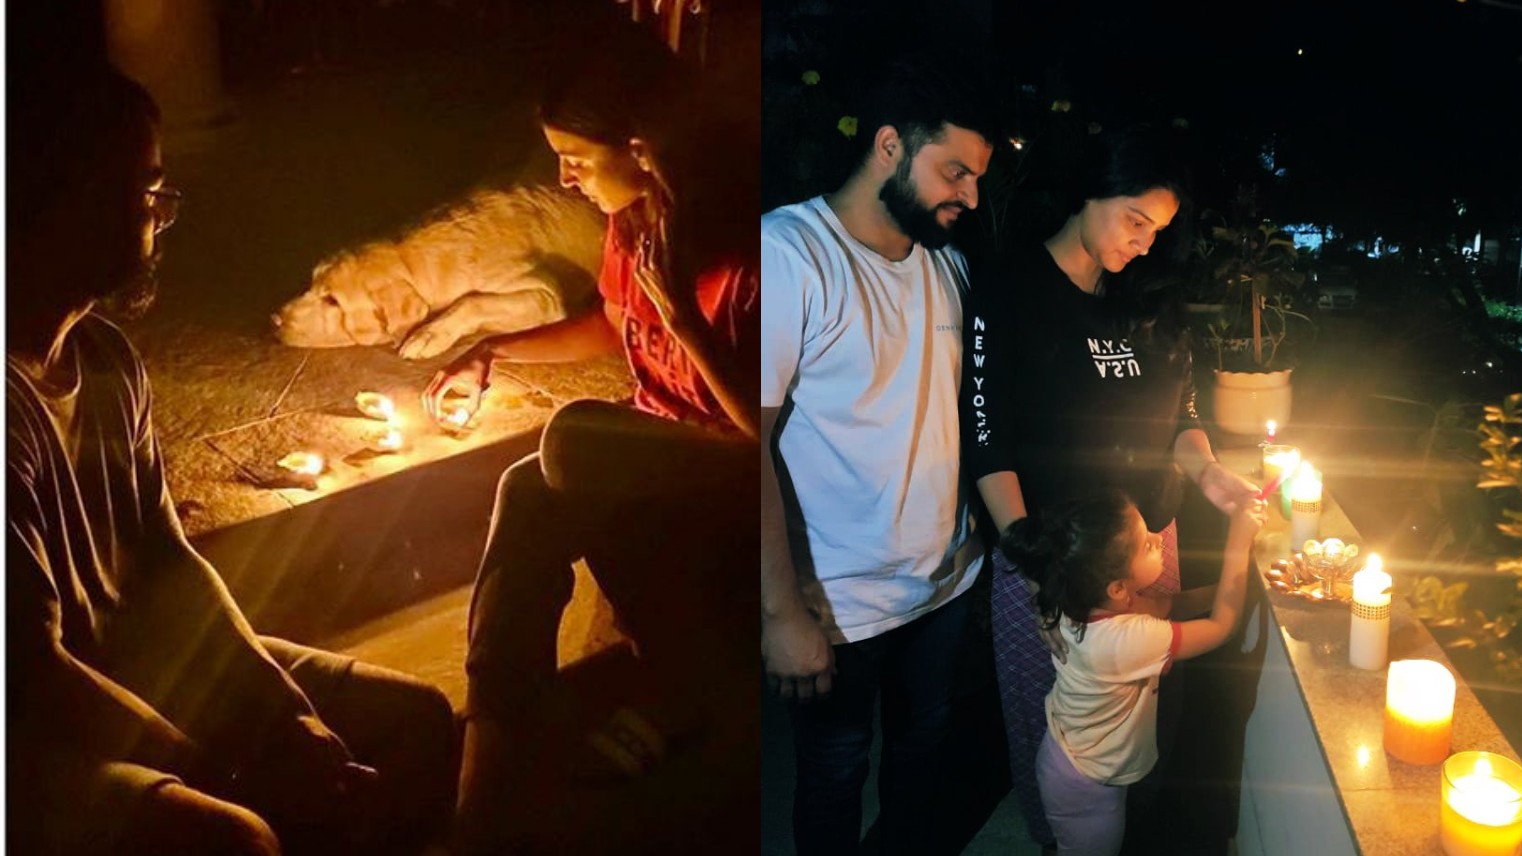 Indian cricketers share their participation in PM Modi's call to light candles at 9 pm on April 5